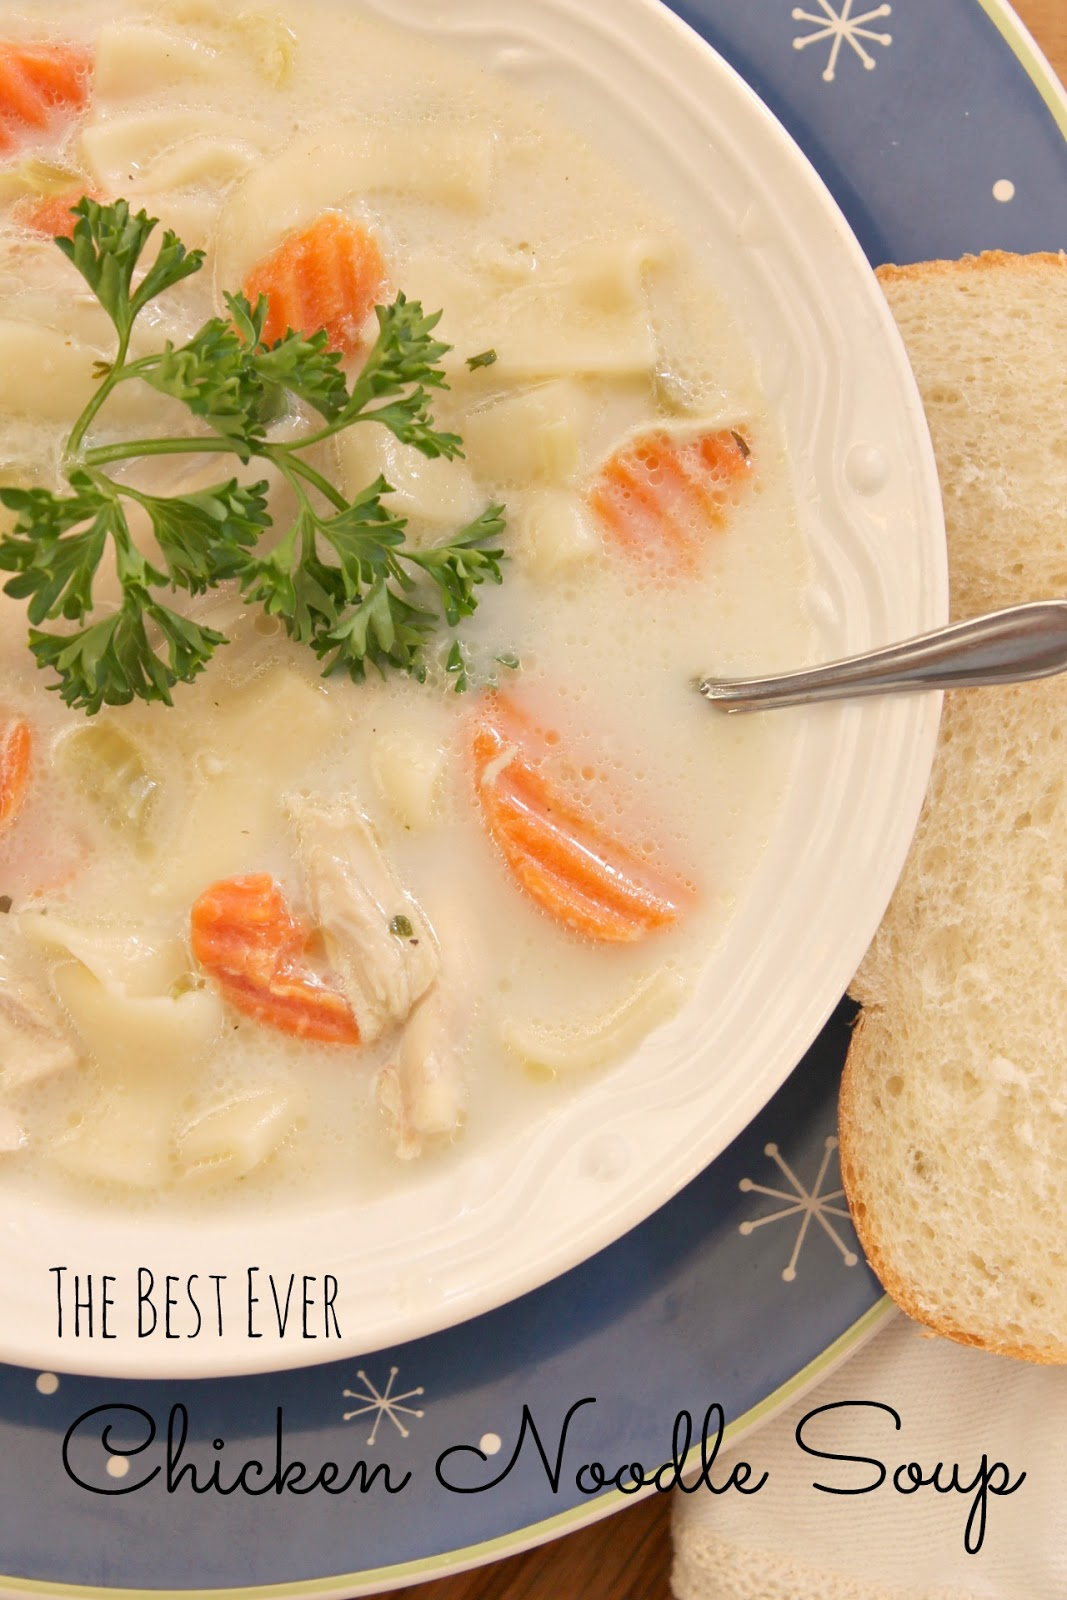 The Best Ever Chicken Noodle Soup...